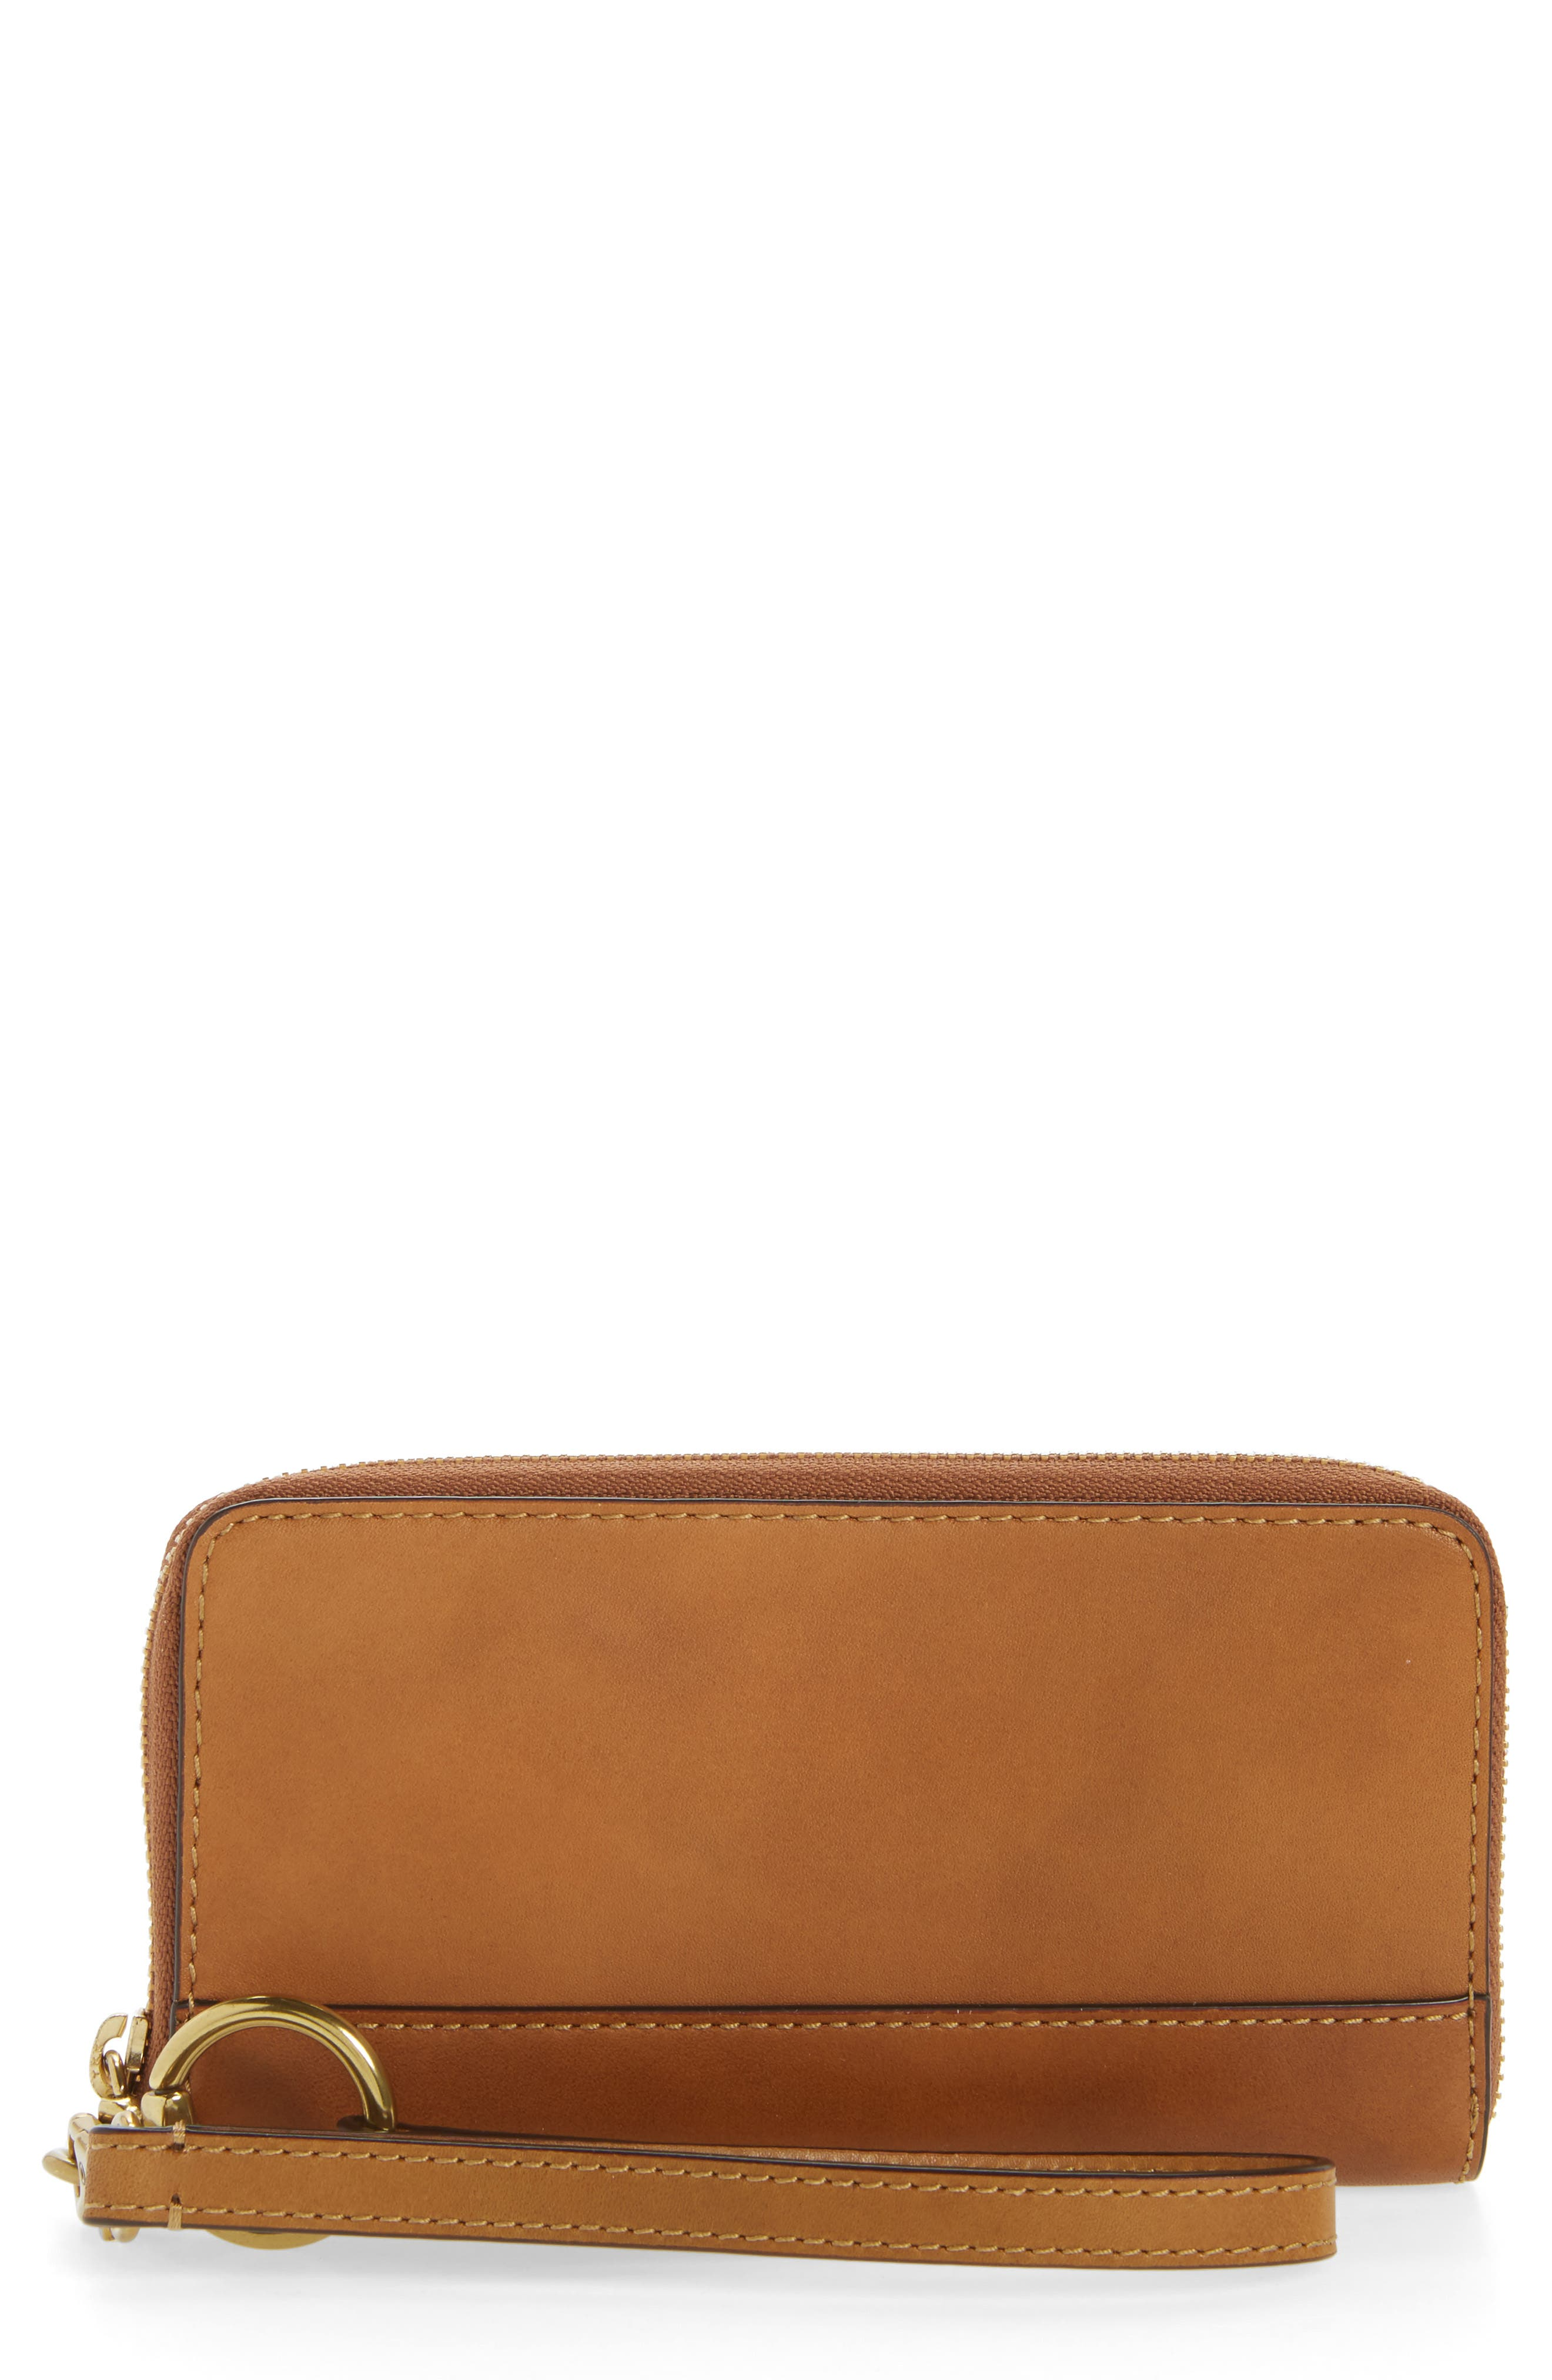 Frye Ilana Harness Phone Leather Zip Wallet